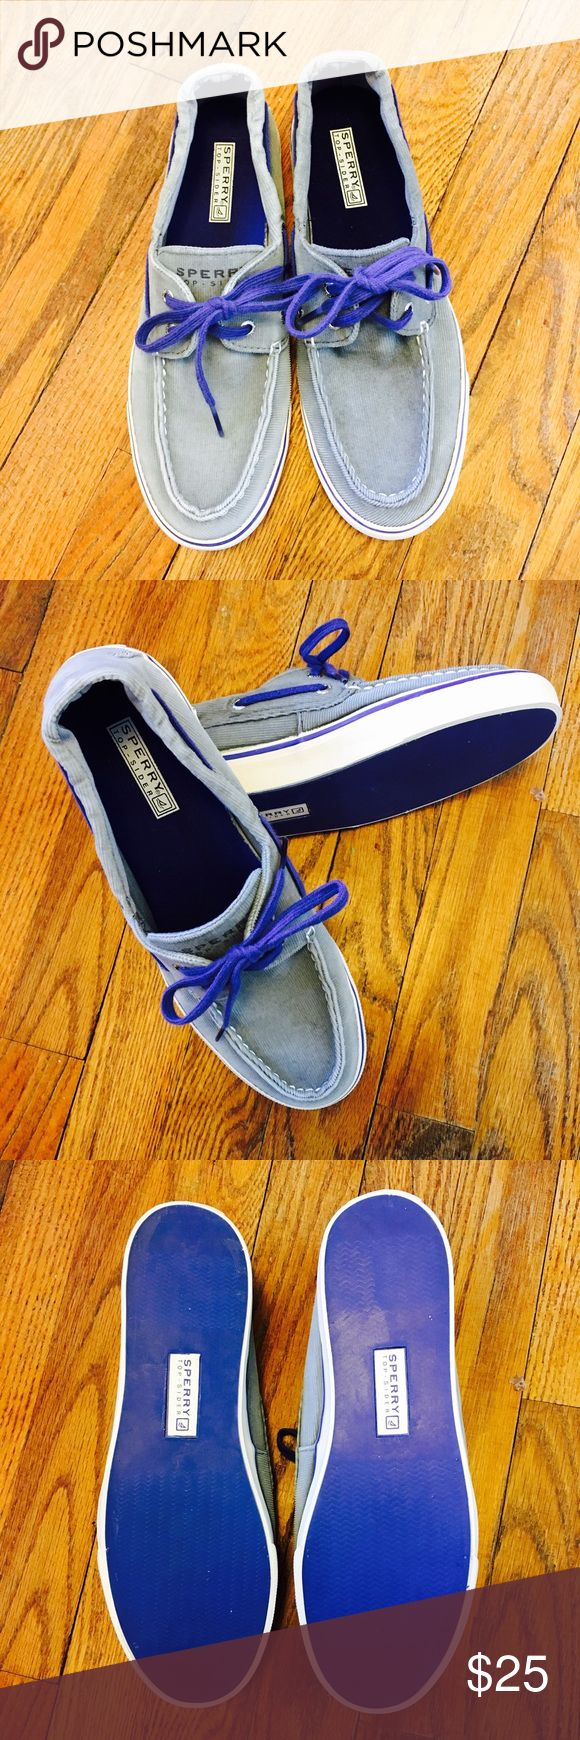 Sperry Top-Siders Sperry Top-Siders gray corduroy with blue laces and bottoms. Gently worn but still in good condition! Size 9. Sperry Top-Sider Shoes